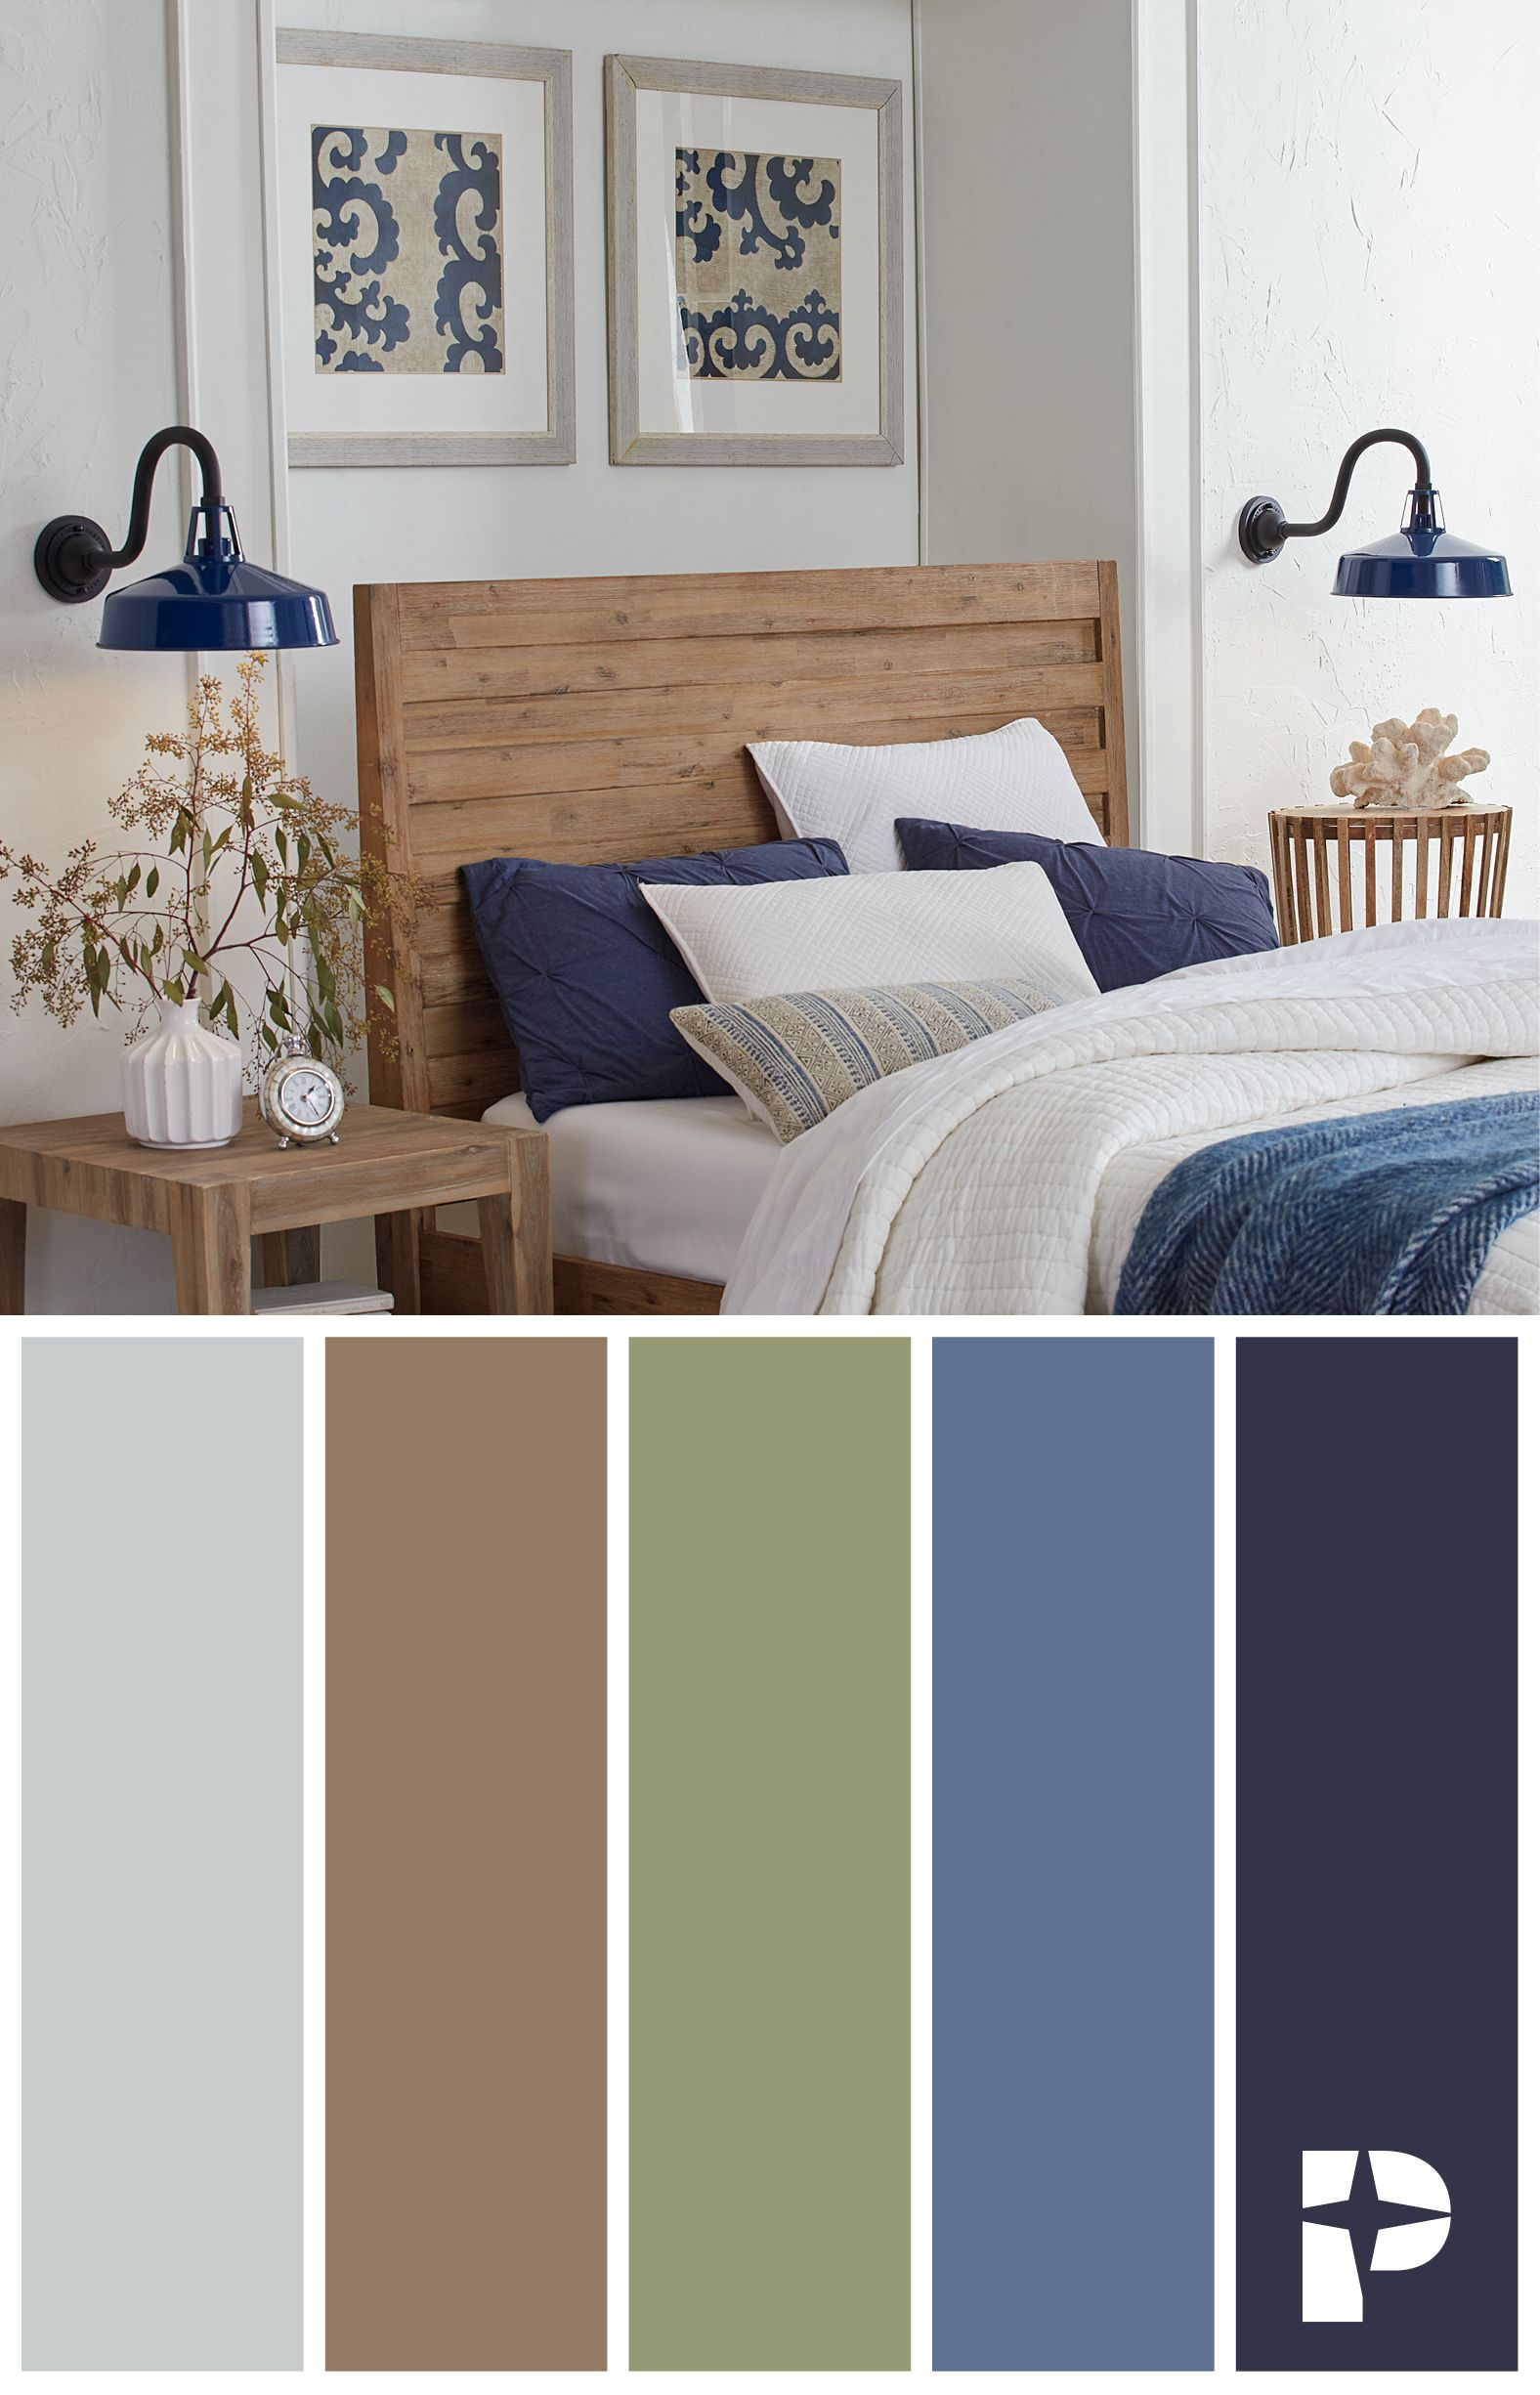 Modern Farmhouse Bedroom Design Warm Color Palette Perfectly Complemented By Navy Bedroom Inspiration Cozy Master Bedroom Color Schemes Warm Living Room Colors